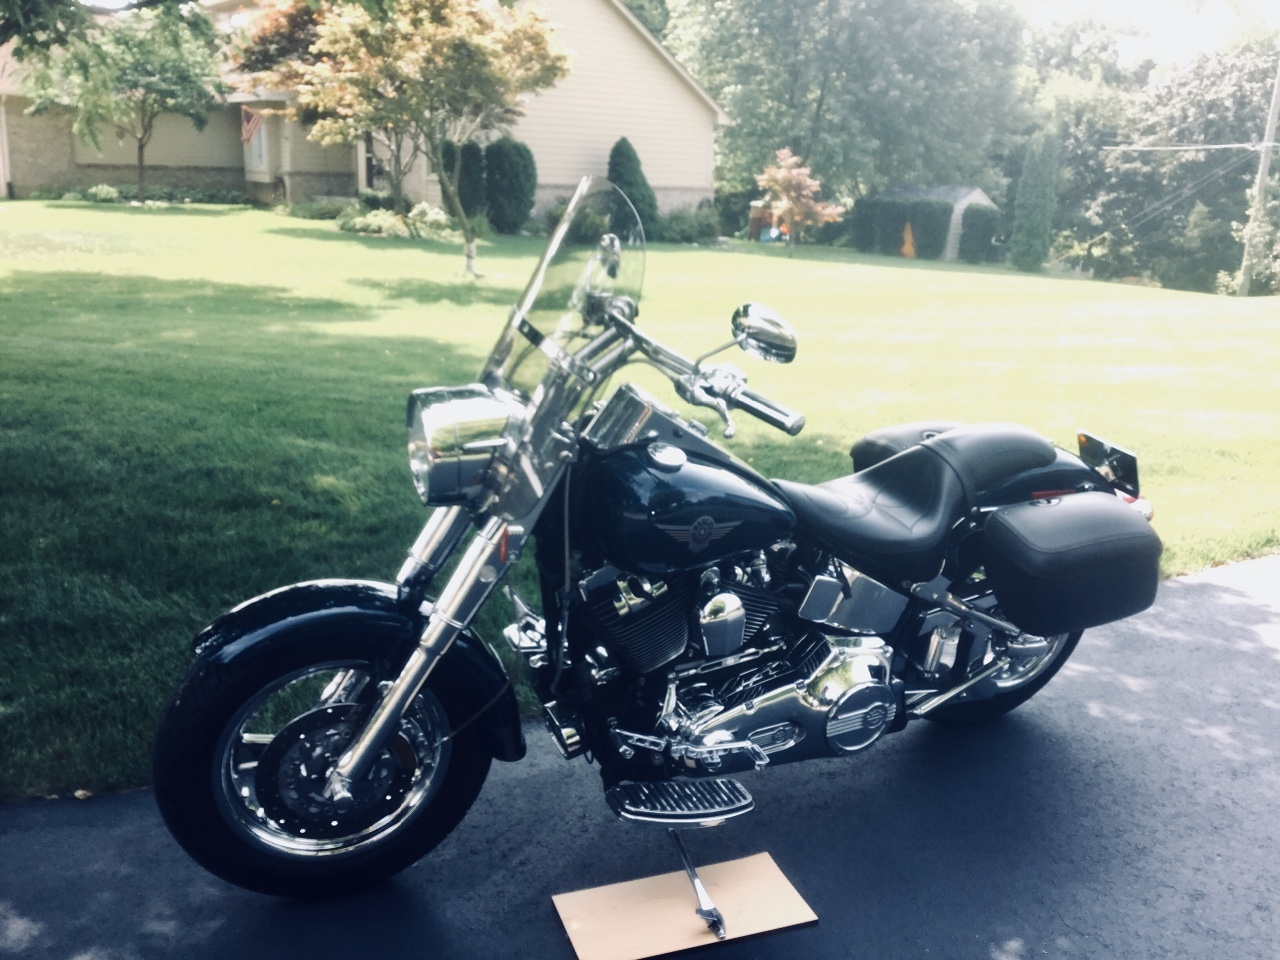 Fat Boy For Sale - Harley-Davidson Motorcycles - Cycle Trader